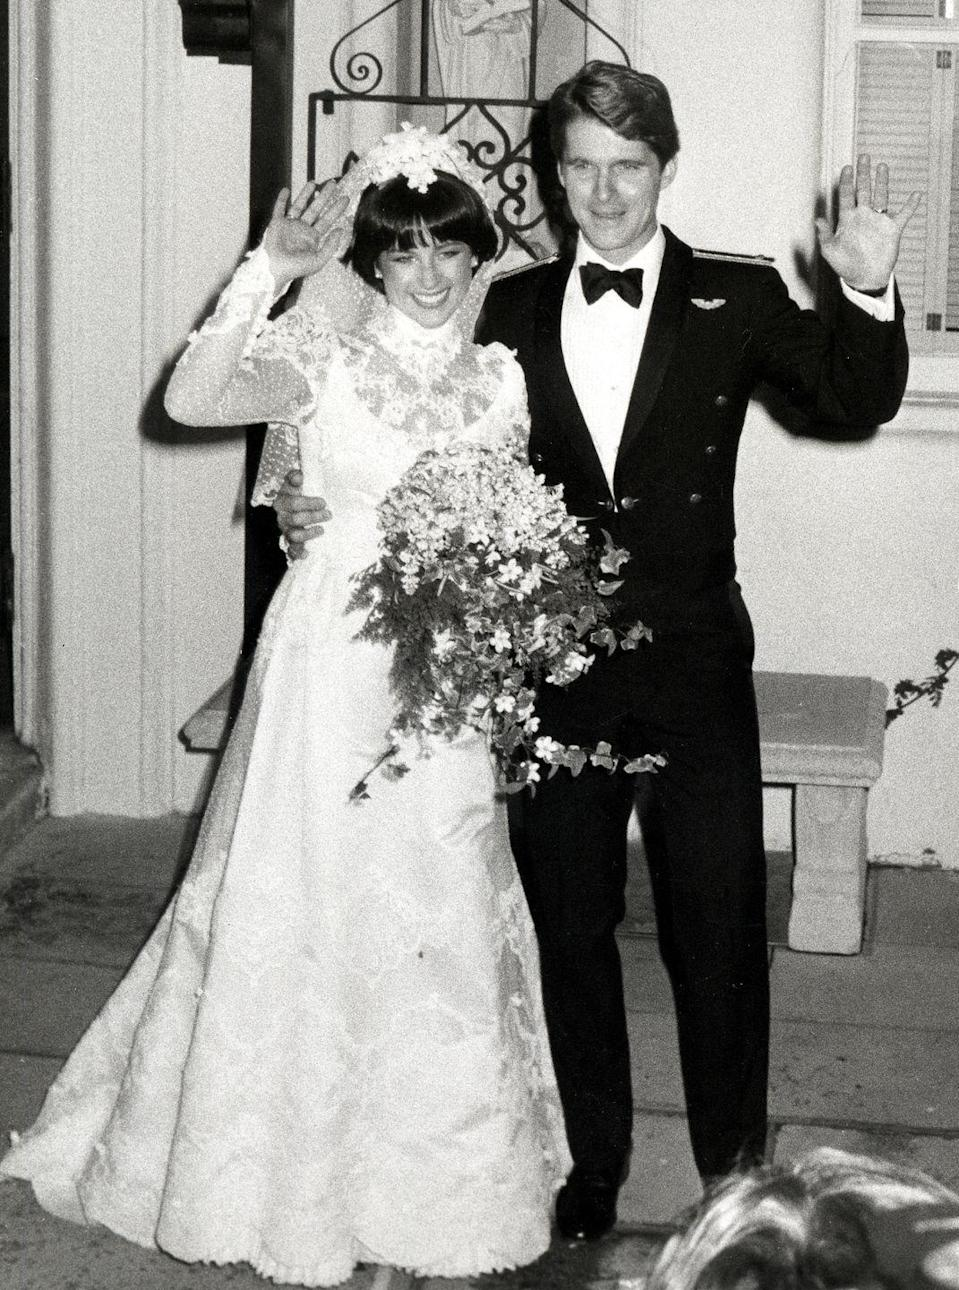 <p>After Princess Diana's wedding, everyone began channeling their inner royal. Extra lace accents, longer veils, and bigger bouquets abounded. Figure skater Dorothy Hamill married Dean Paul Martin in 1982, complete with—you guessed it—a big bouquet and lace details.</p>